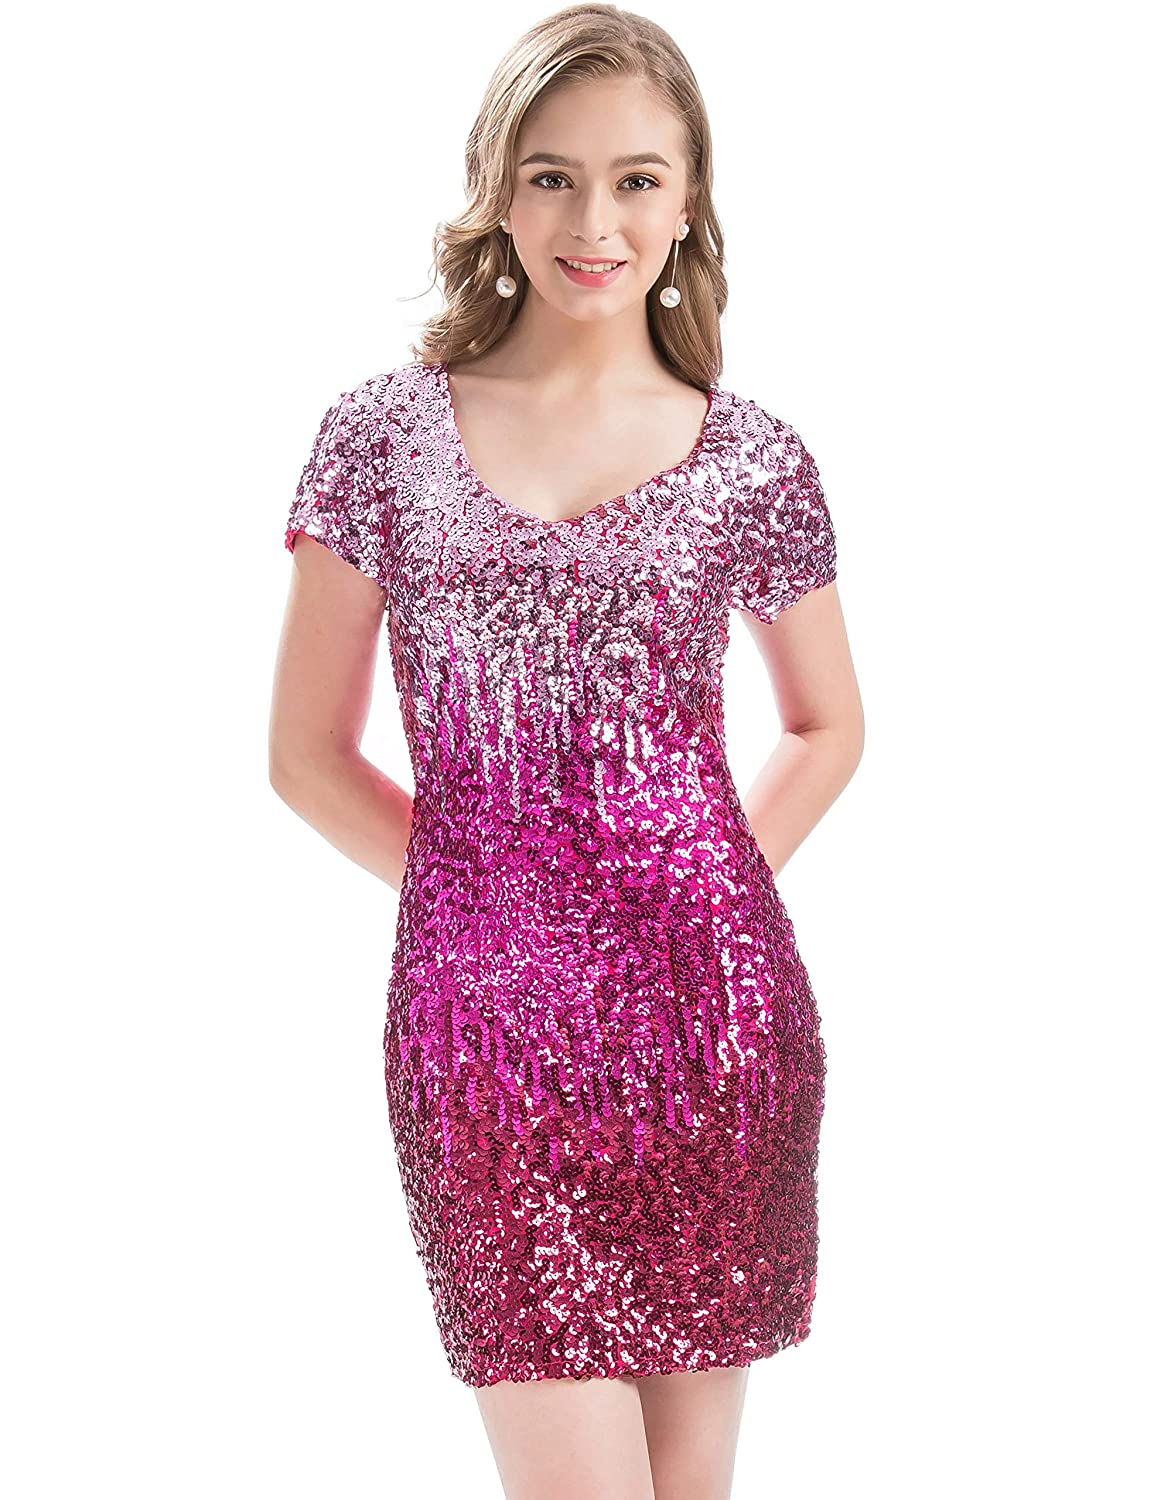 443bb407f4f Amazon.com  MANER Women s Sequin Glitter Short Sleeve Dress Sexy V Neck  Mini Party Club Bodycon Dresses  Clothing